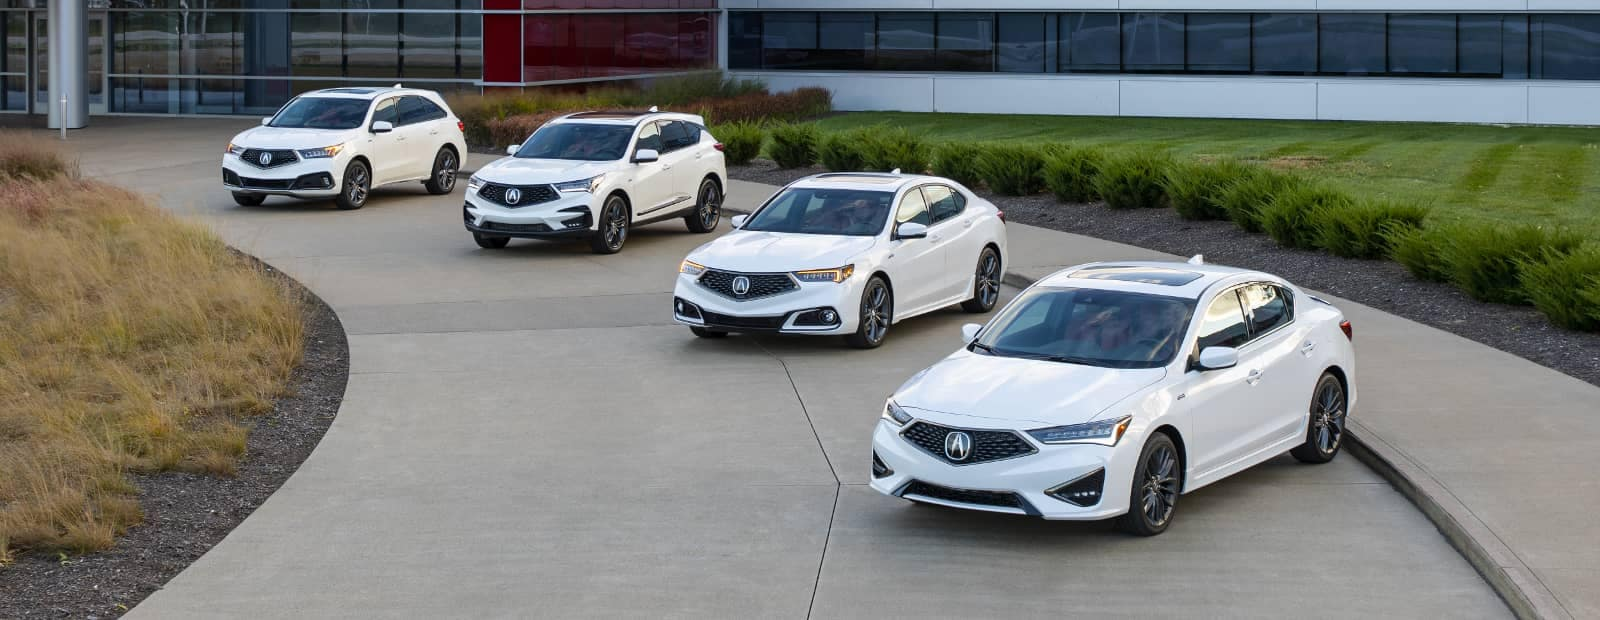 All 2019 Acura A-Spec Models